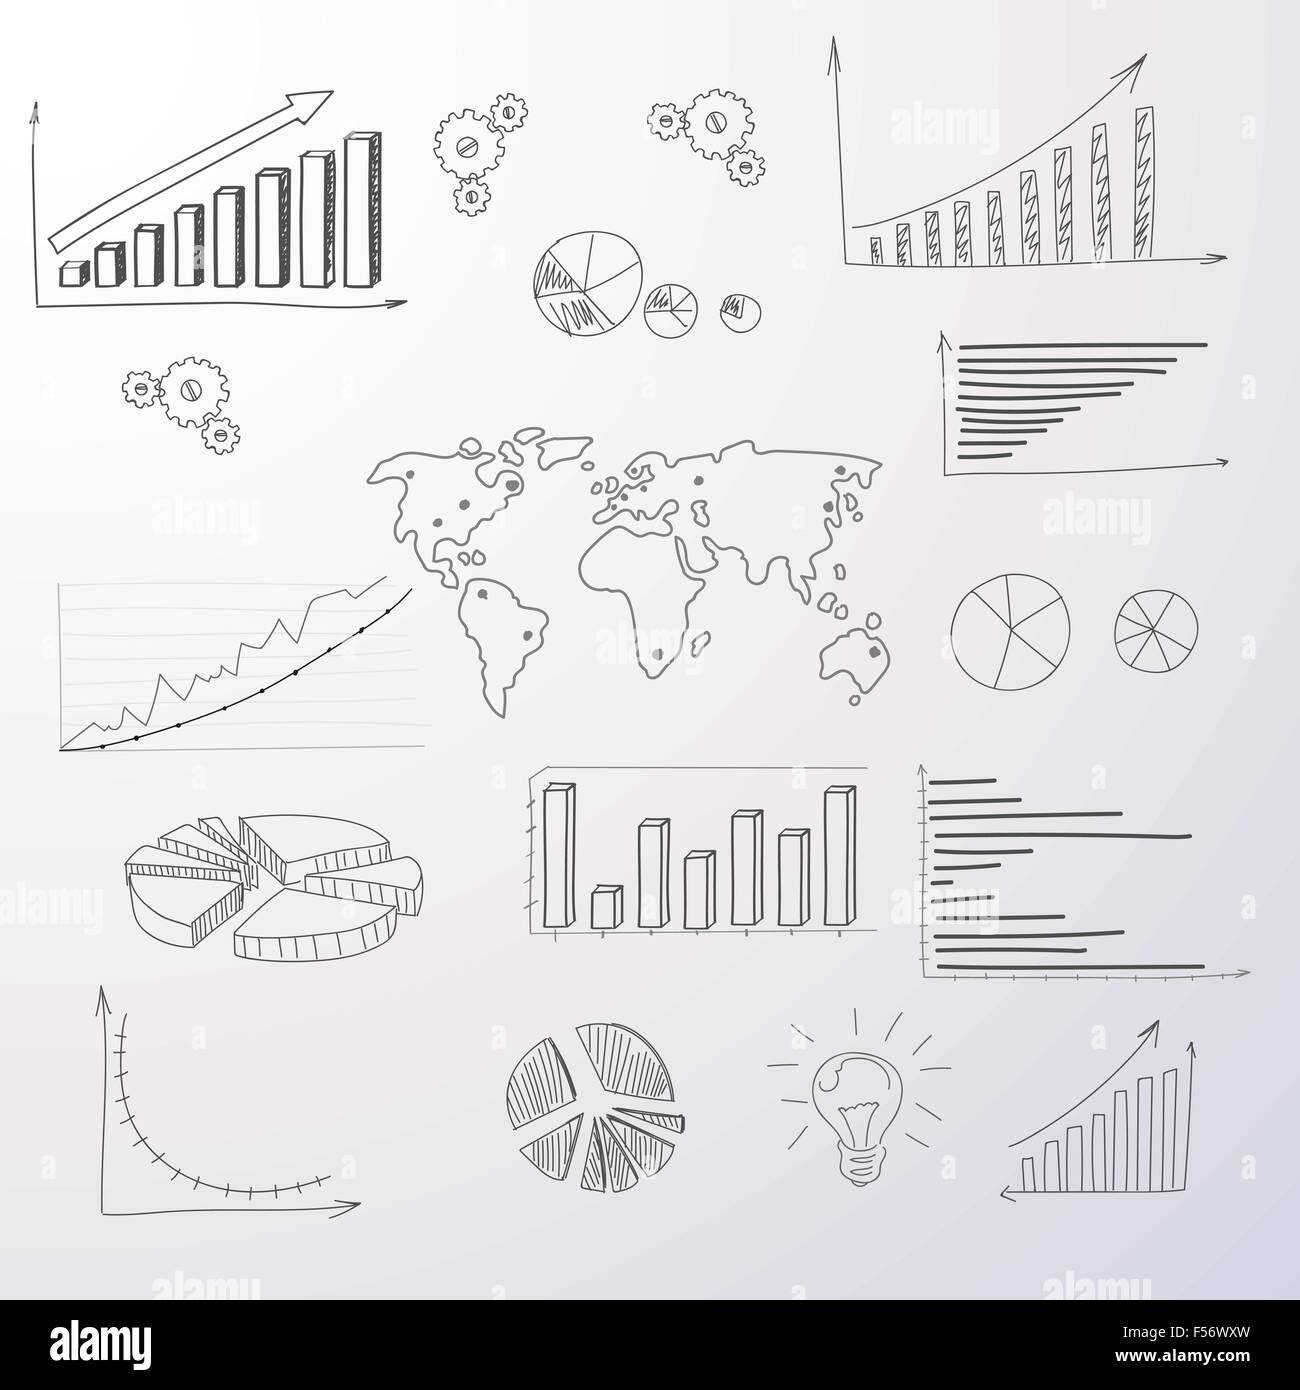 hight resolution of graph set finance diagram infographic hand draw icon sketch financial